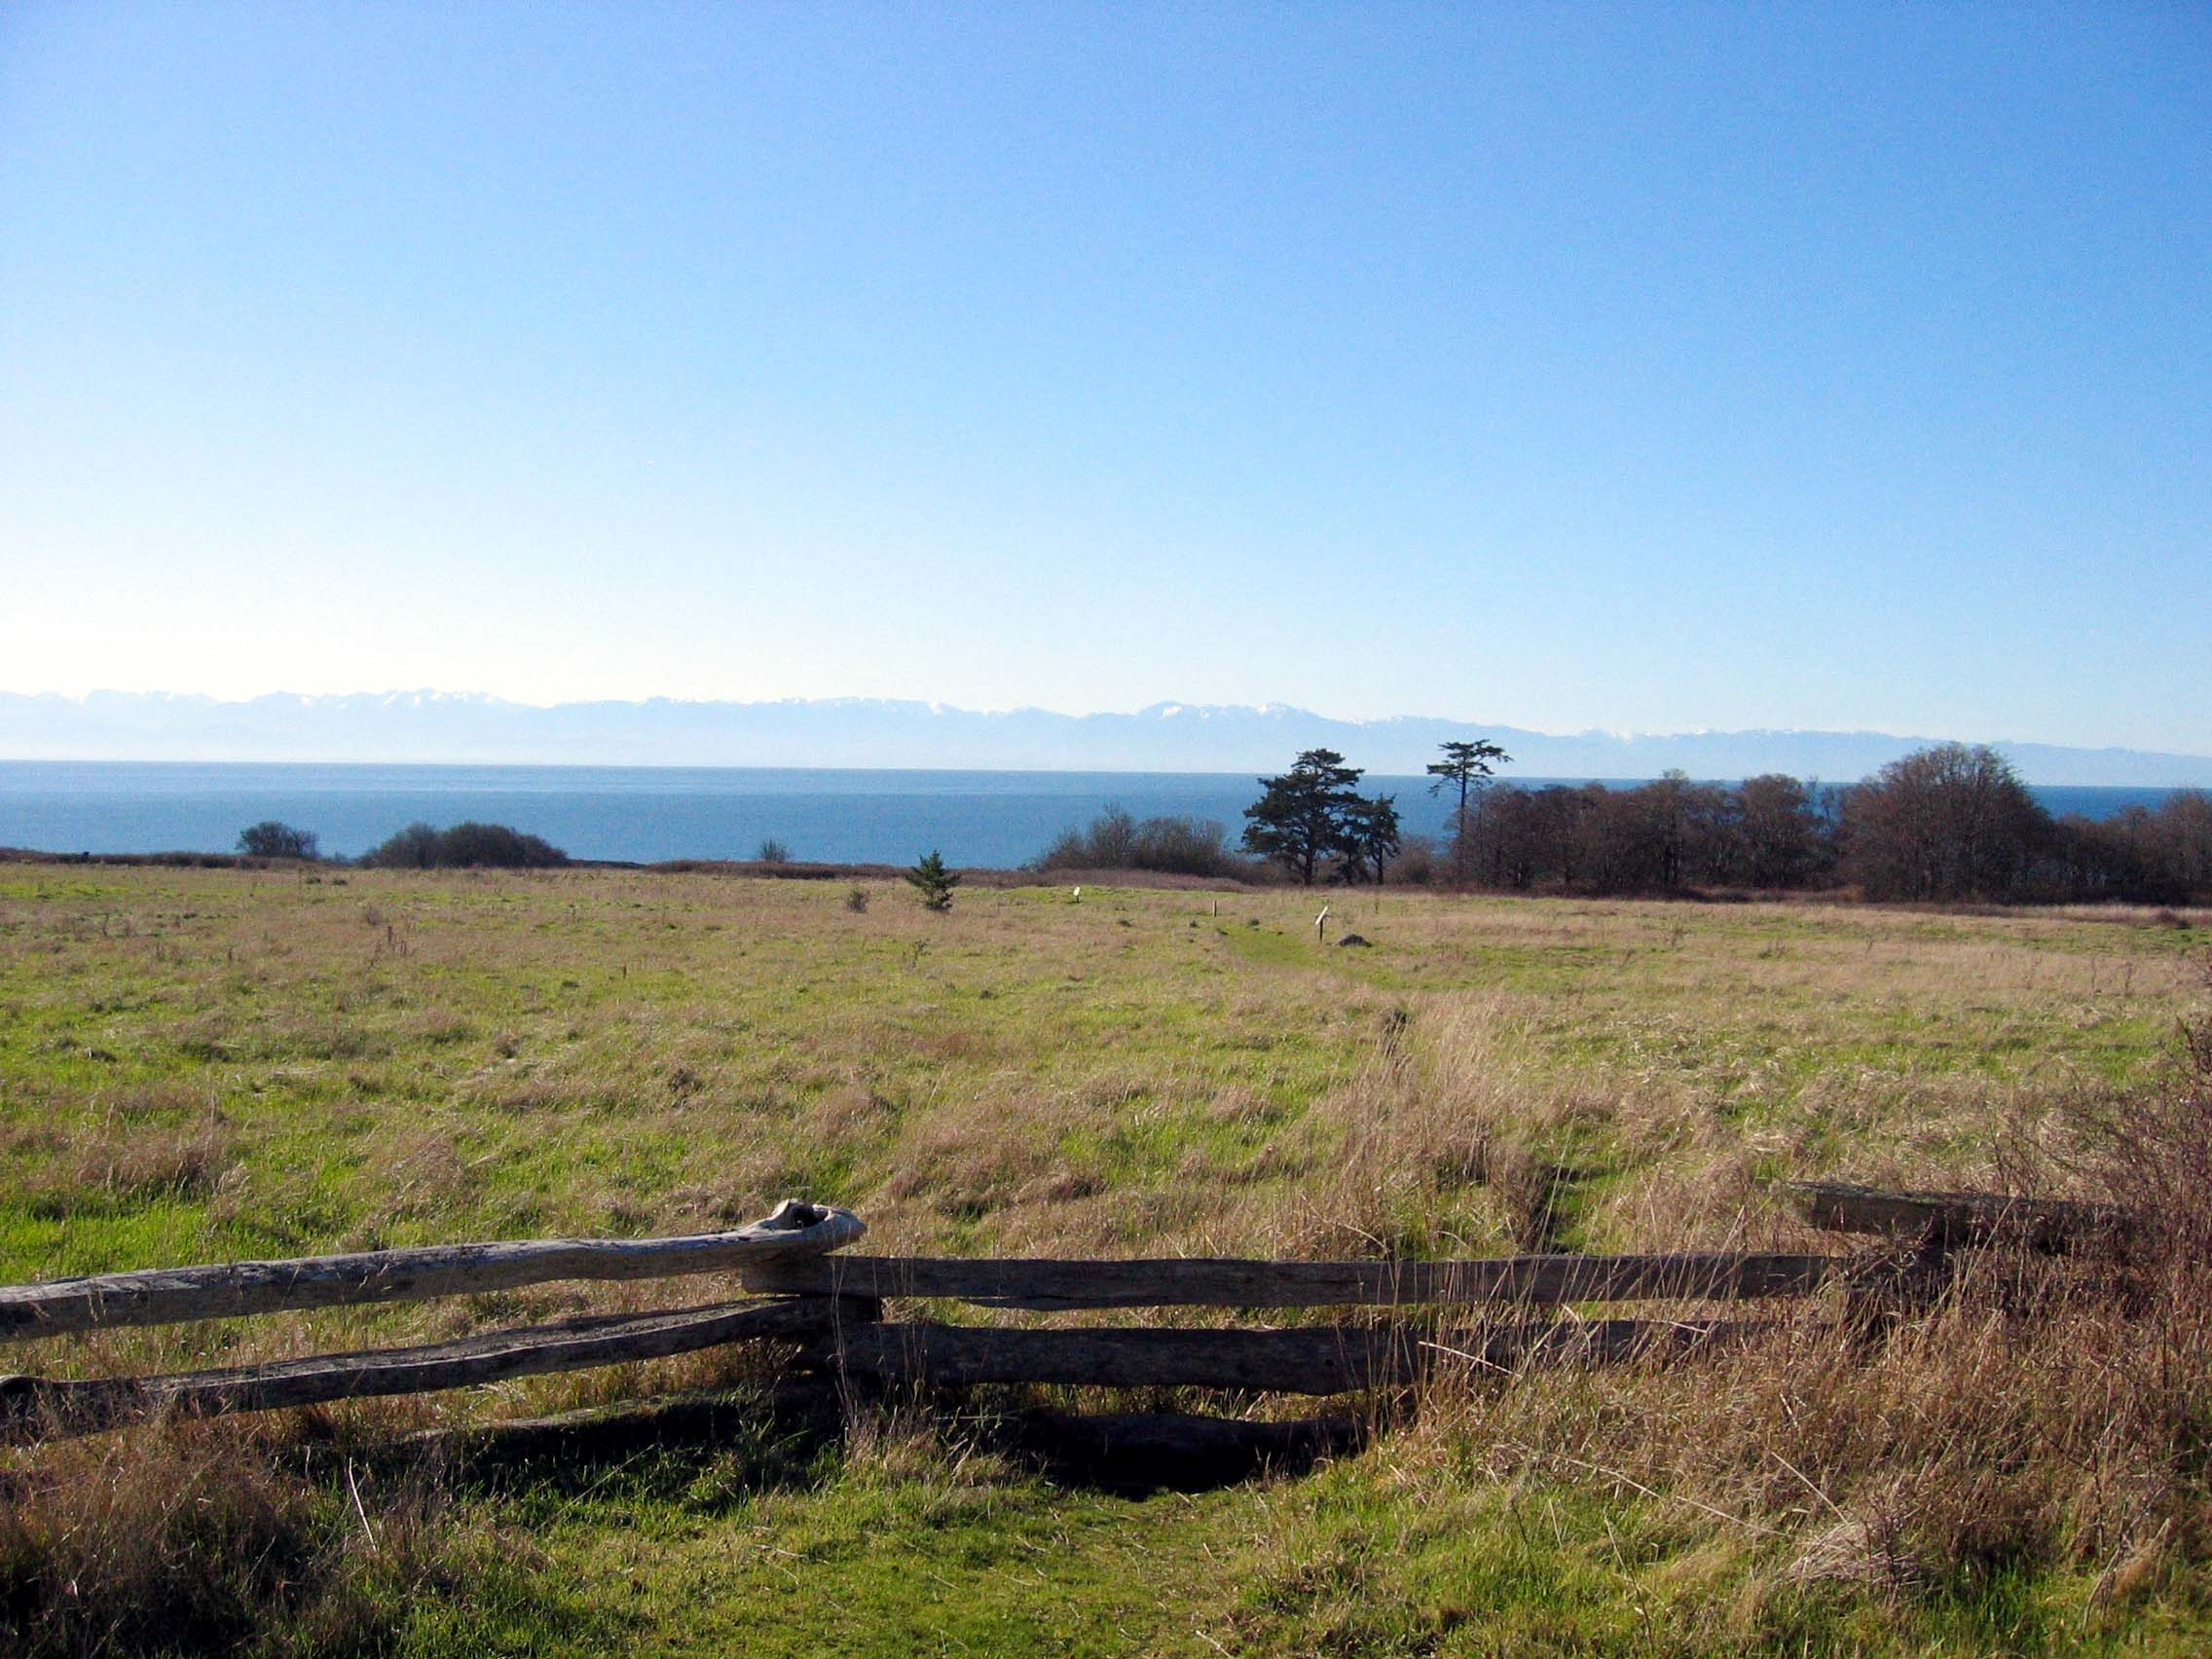 """The view of the Puget Sound from the Belle Vue Sheep Ranch site. It was here that """"Pig War"""" began in 1859."""